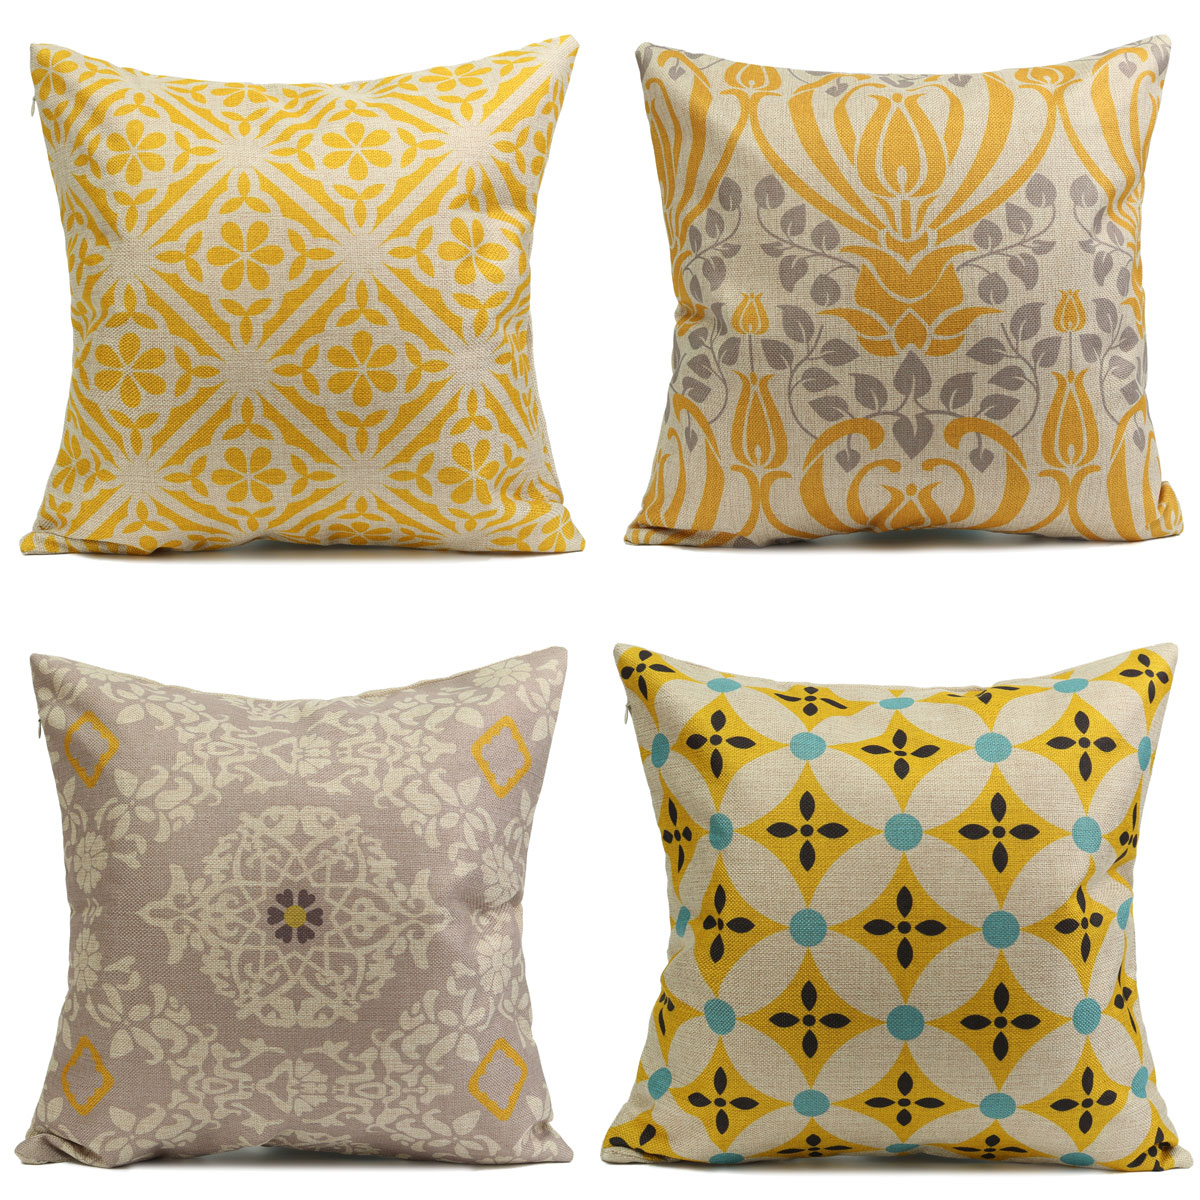 meigar retro yellow flower throw pillow cushion cover standard decorative